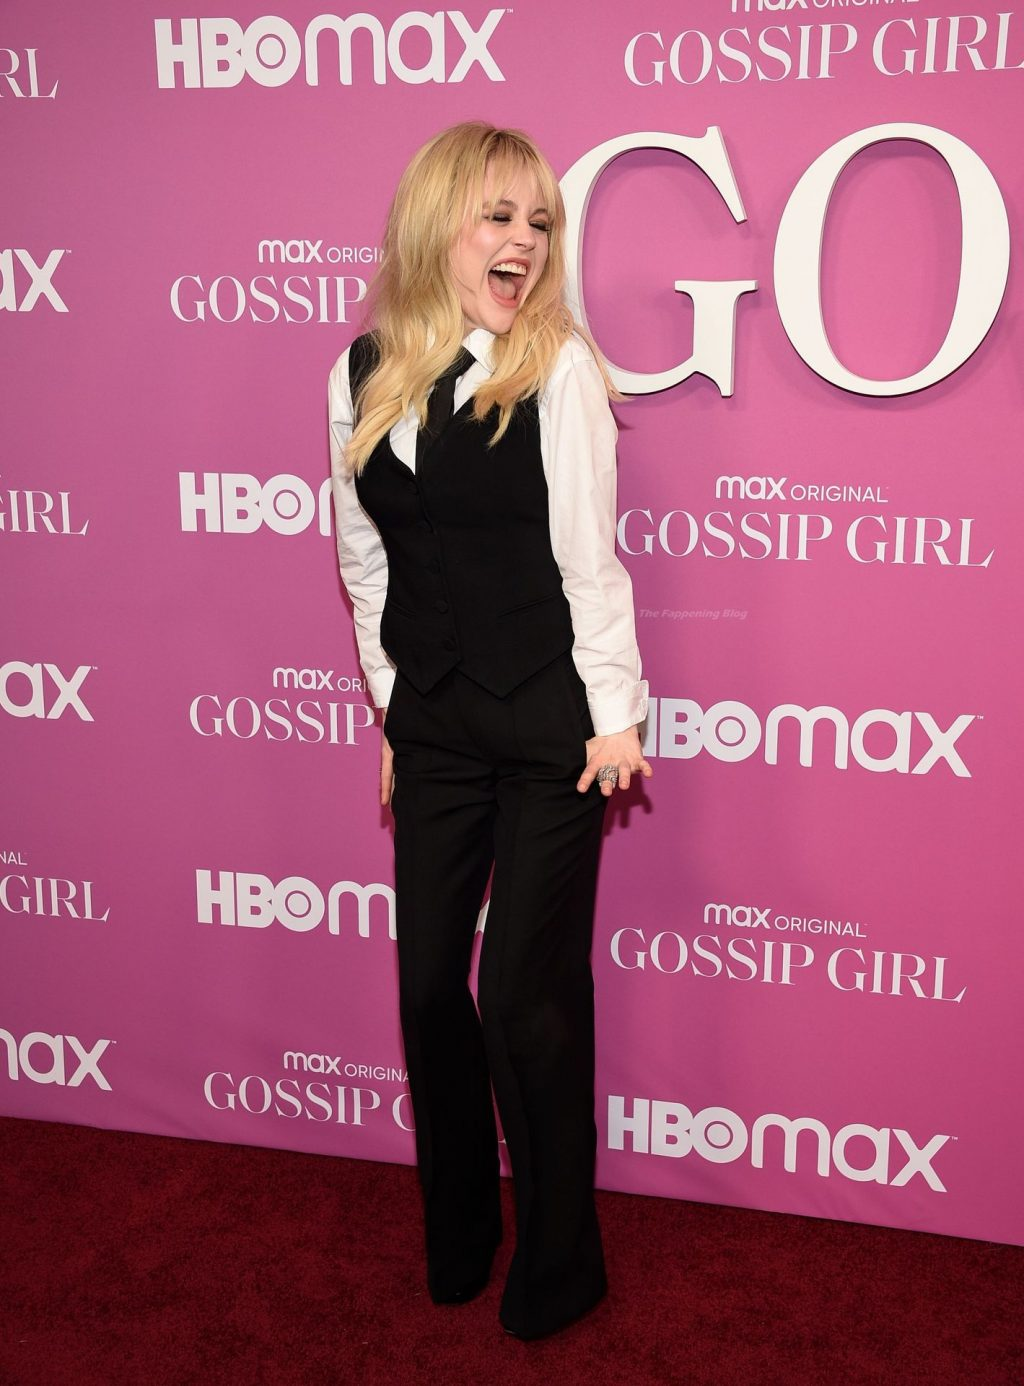 Emily and Natalie Alyn Lind Make Sexy Lesbian Kiss at The Gossip Girl Premiere in New York (56 Photos)